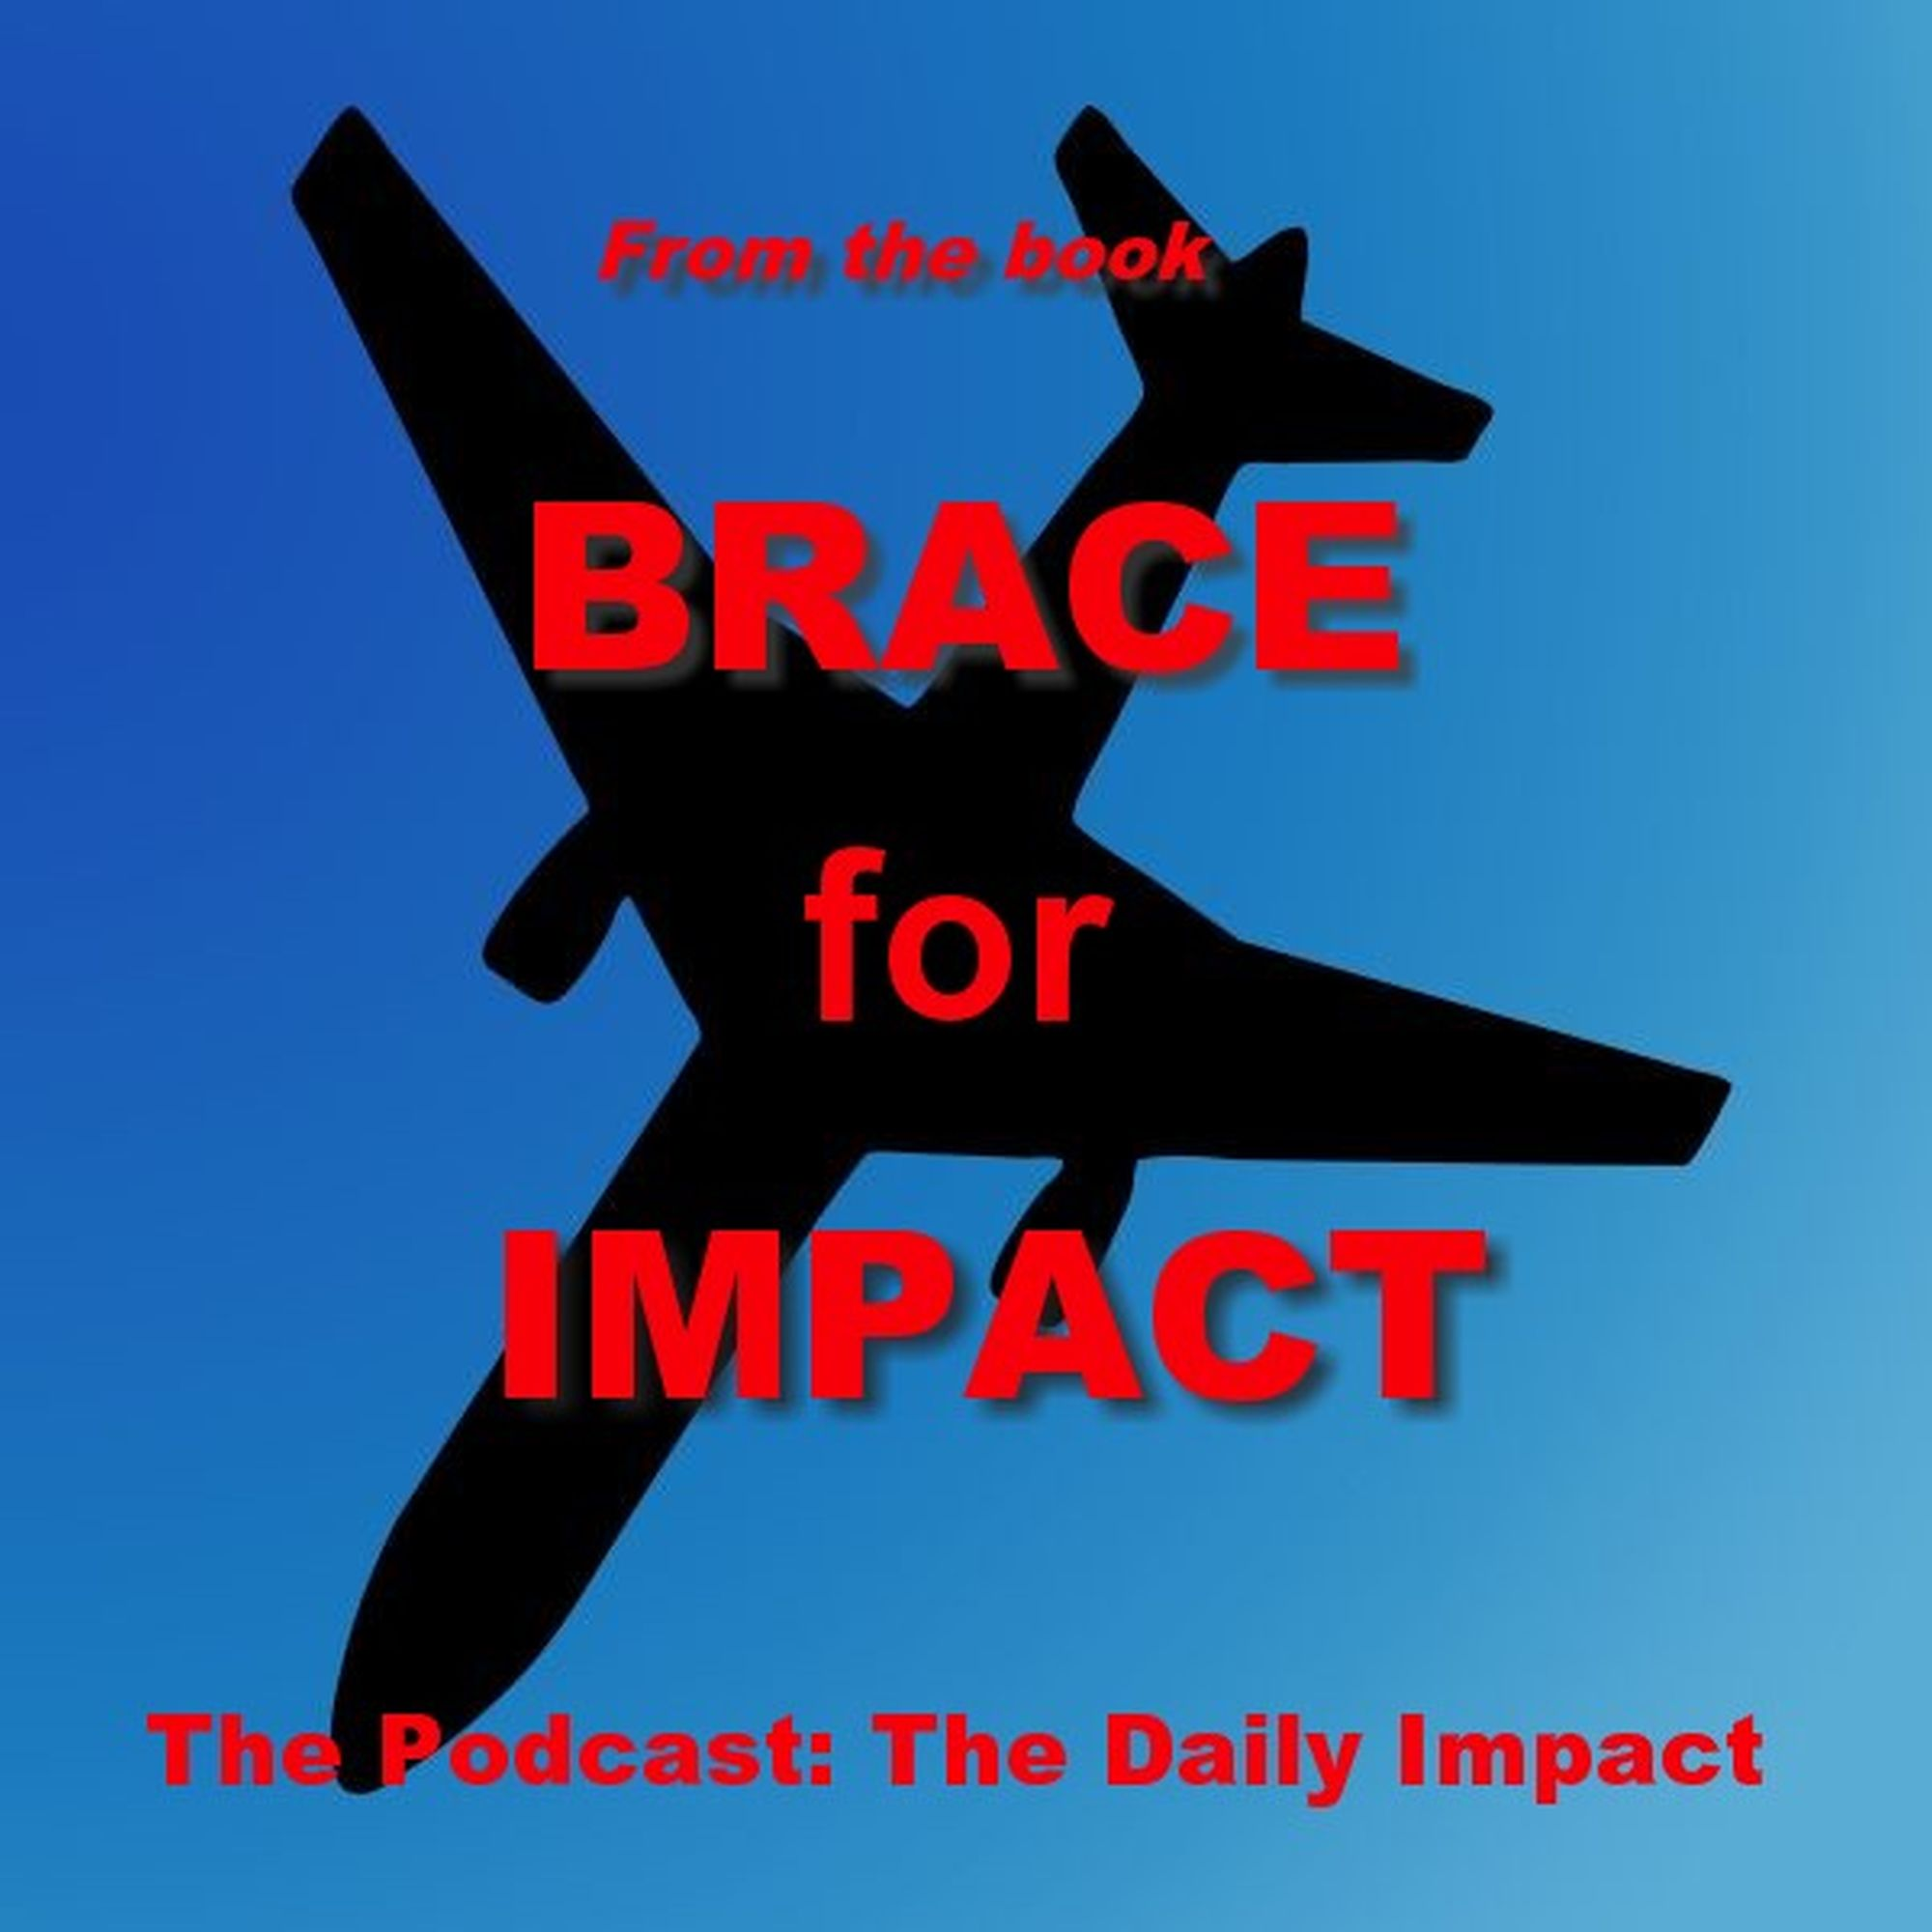 THE DAILY IMPACT